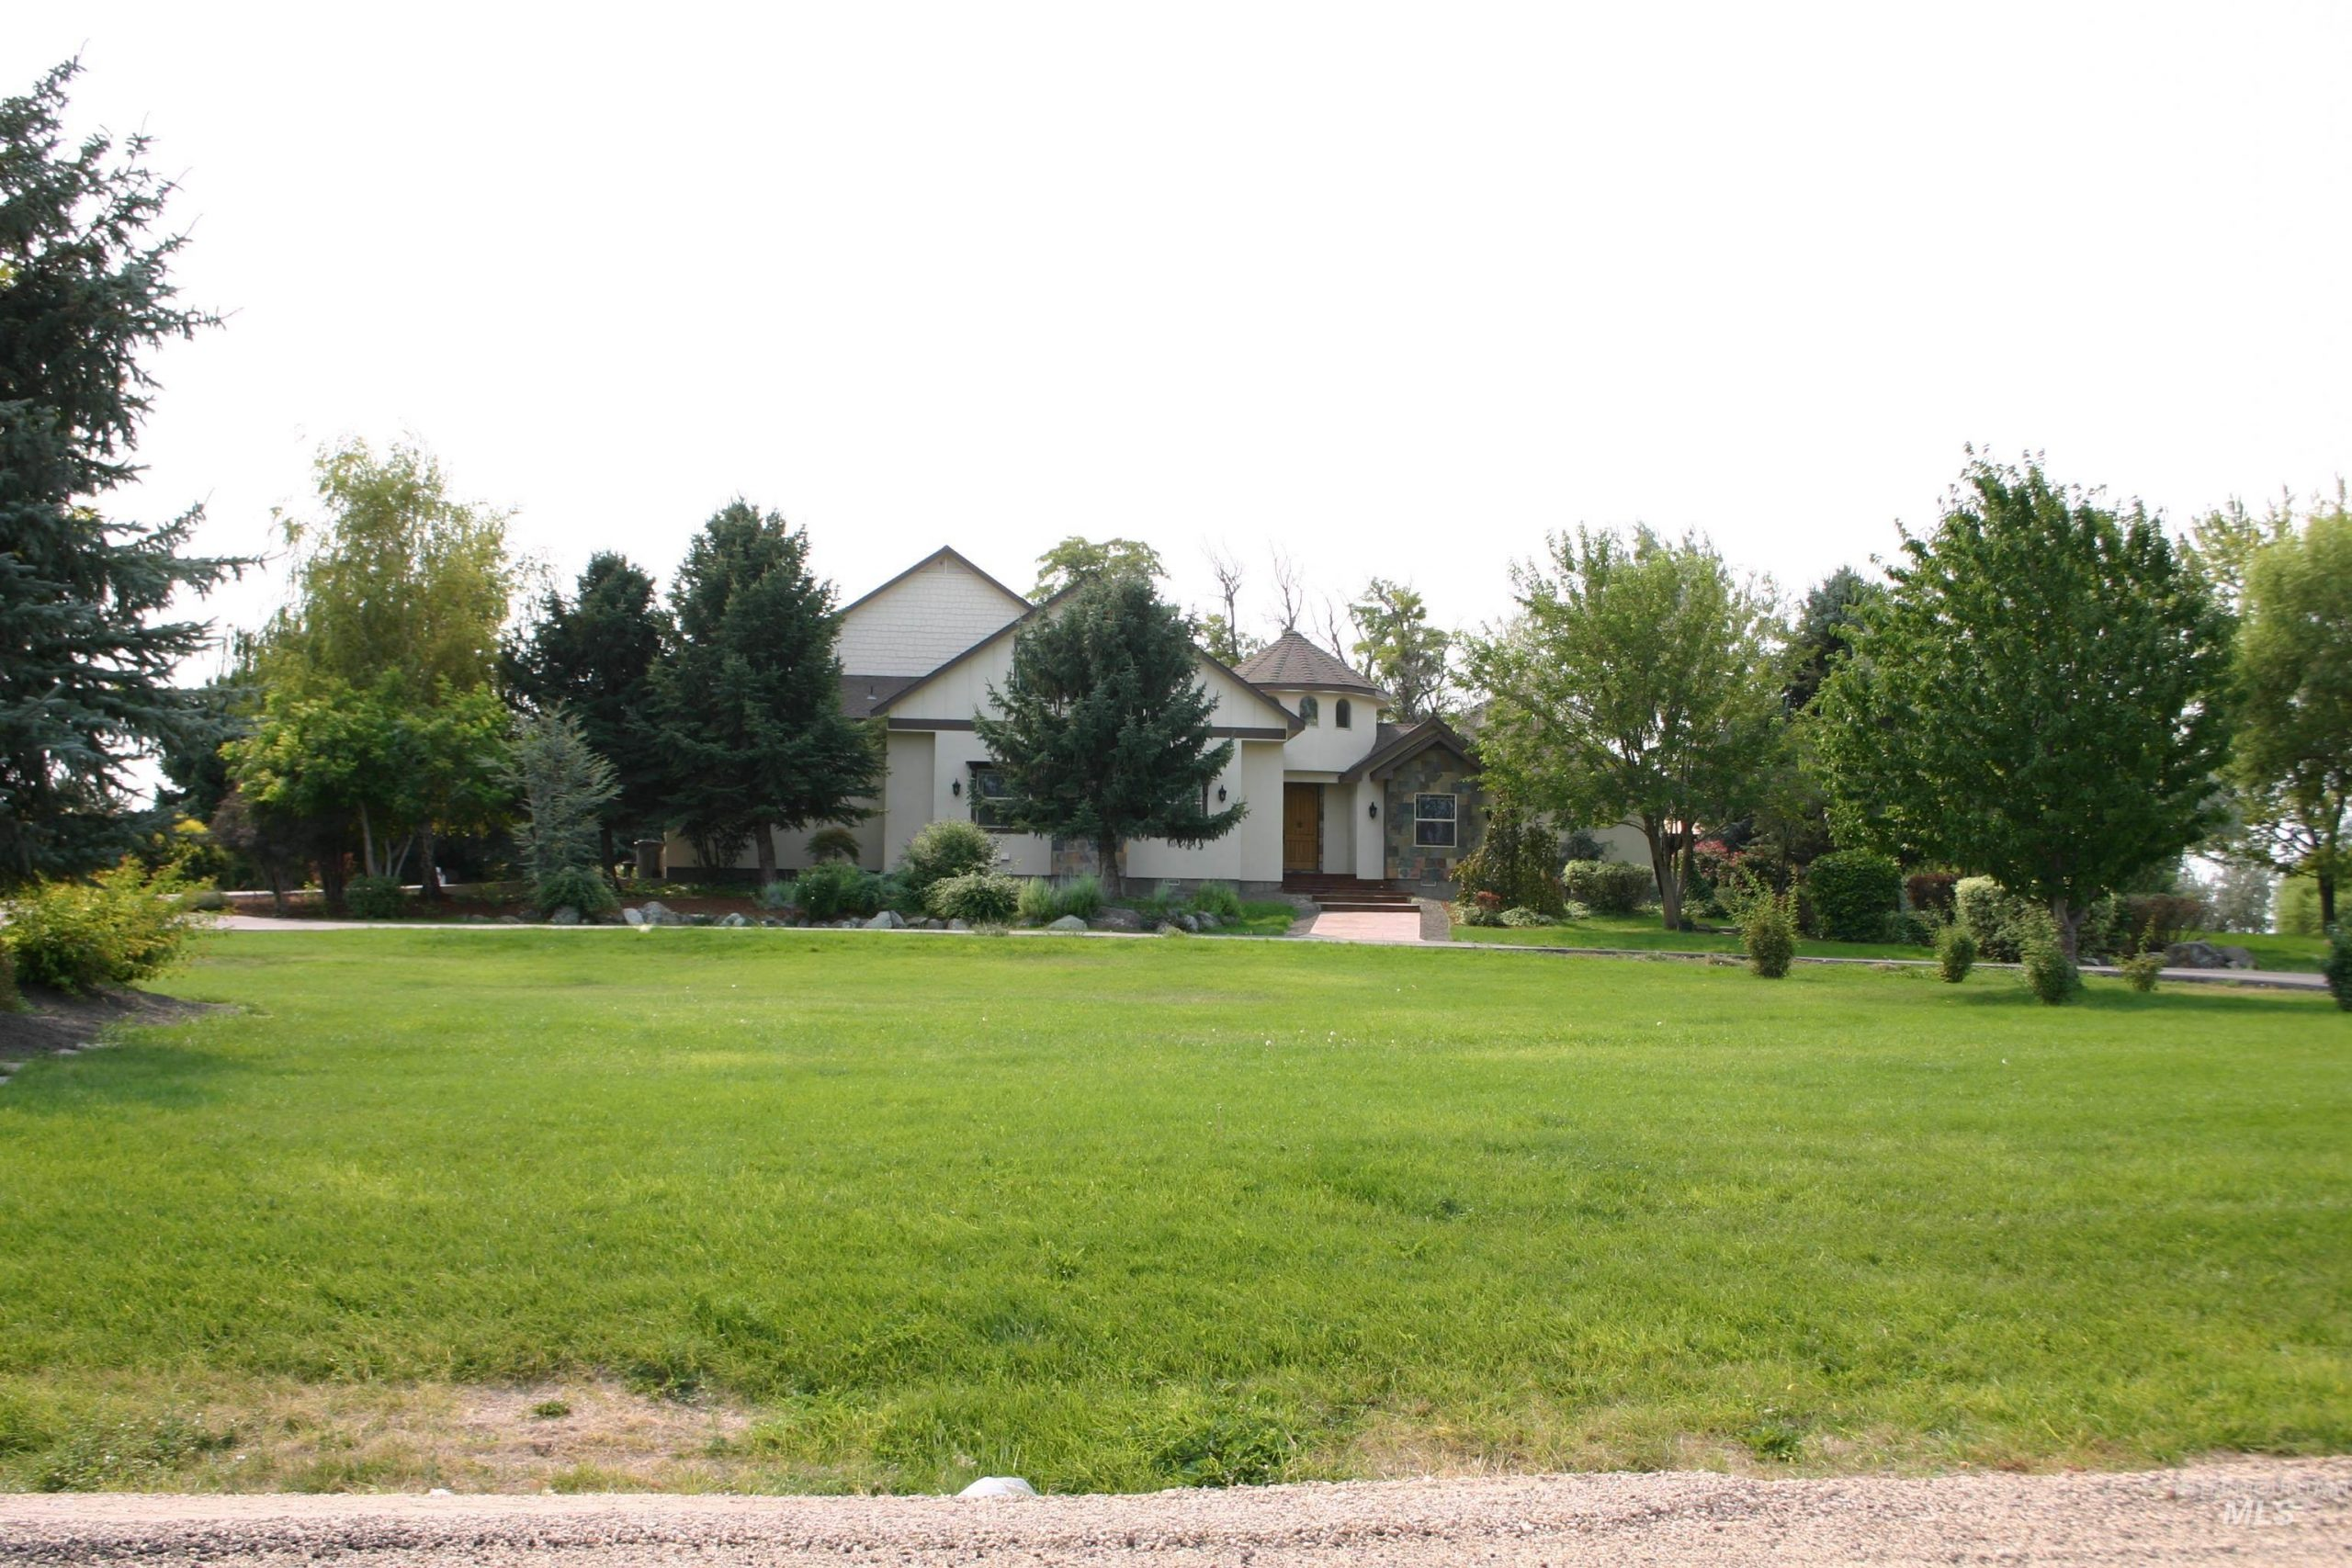 3BR/2BA on .65 Acres with beautiful mature trees and waterfront access to Indian Creek!